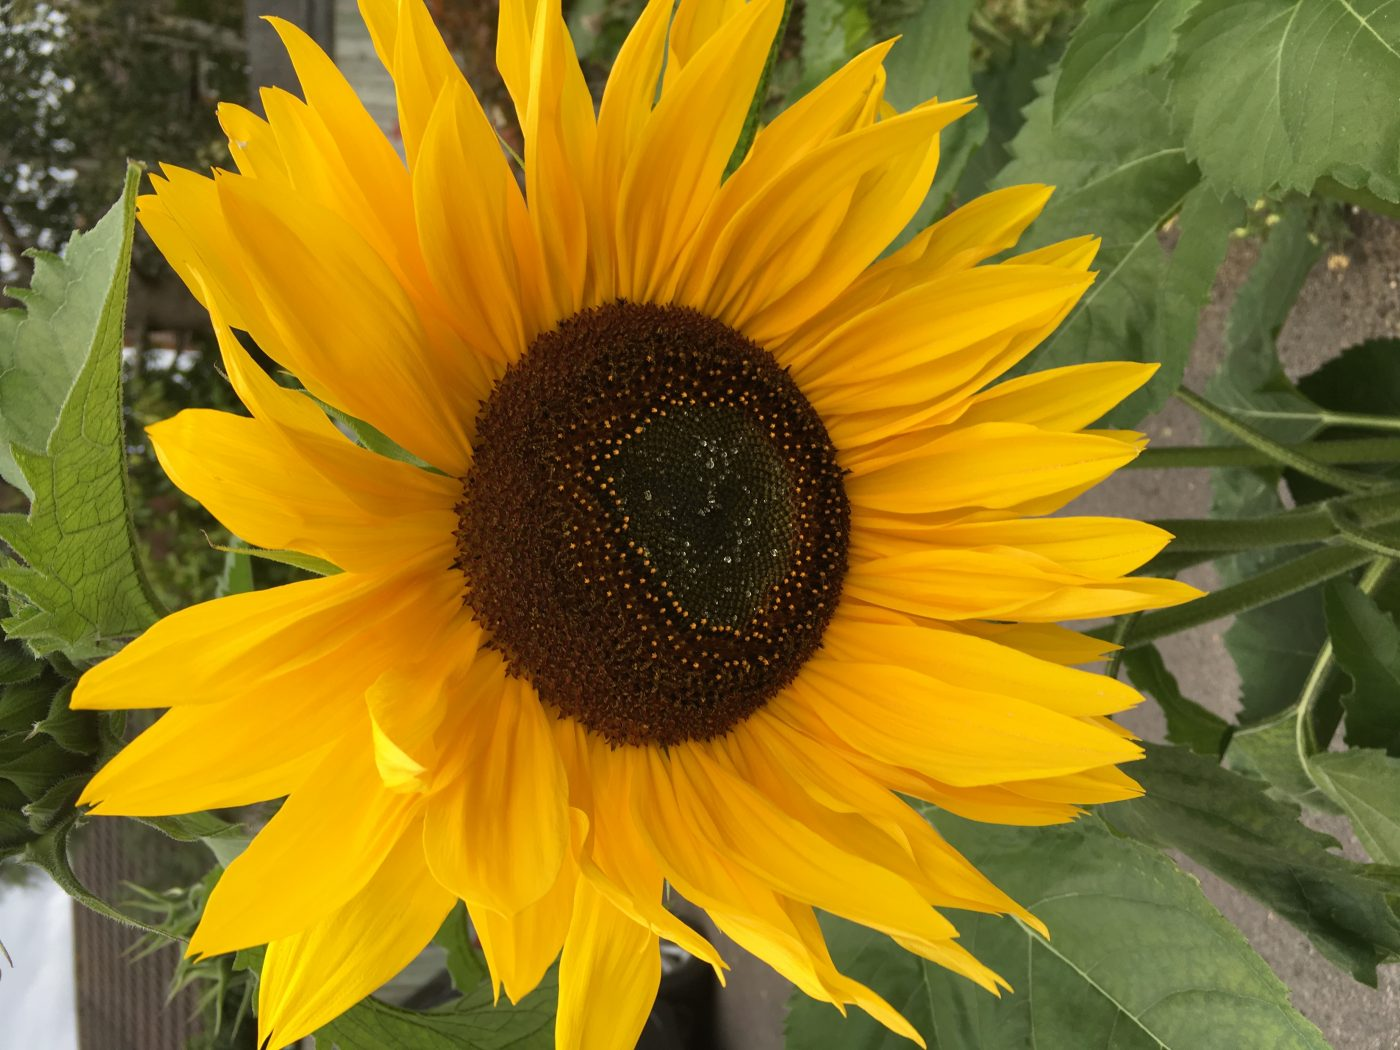 sunflower placeholder image